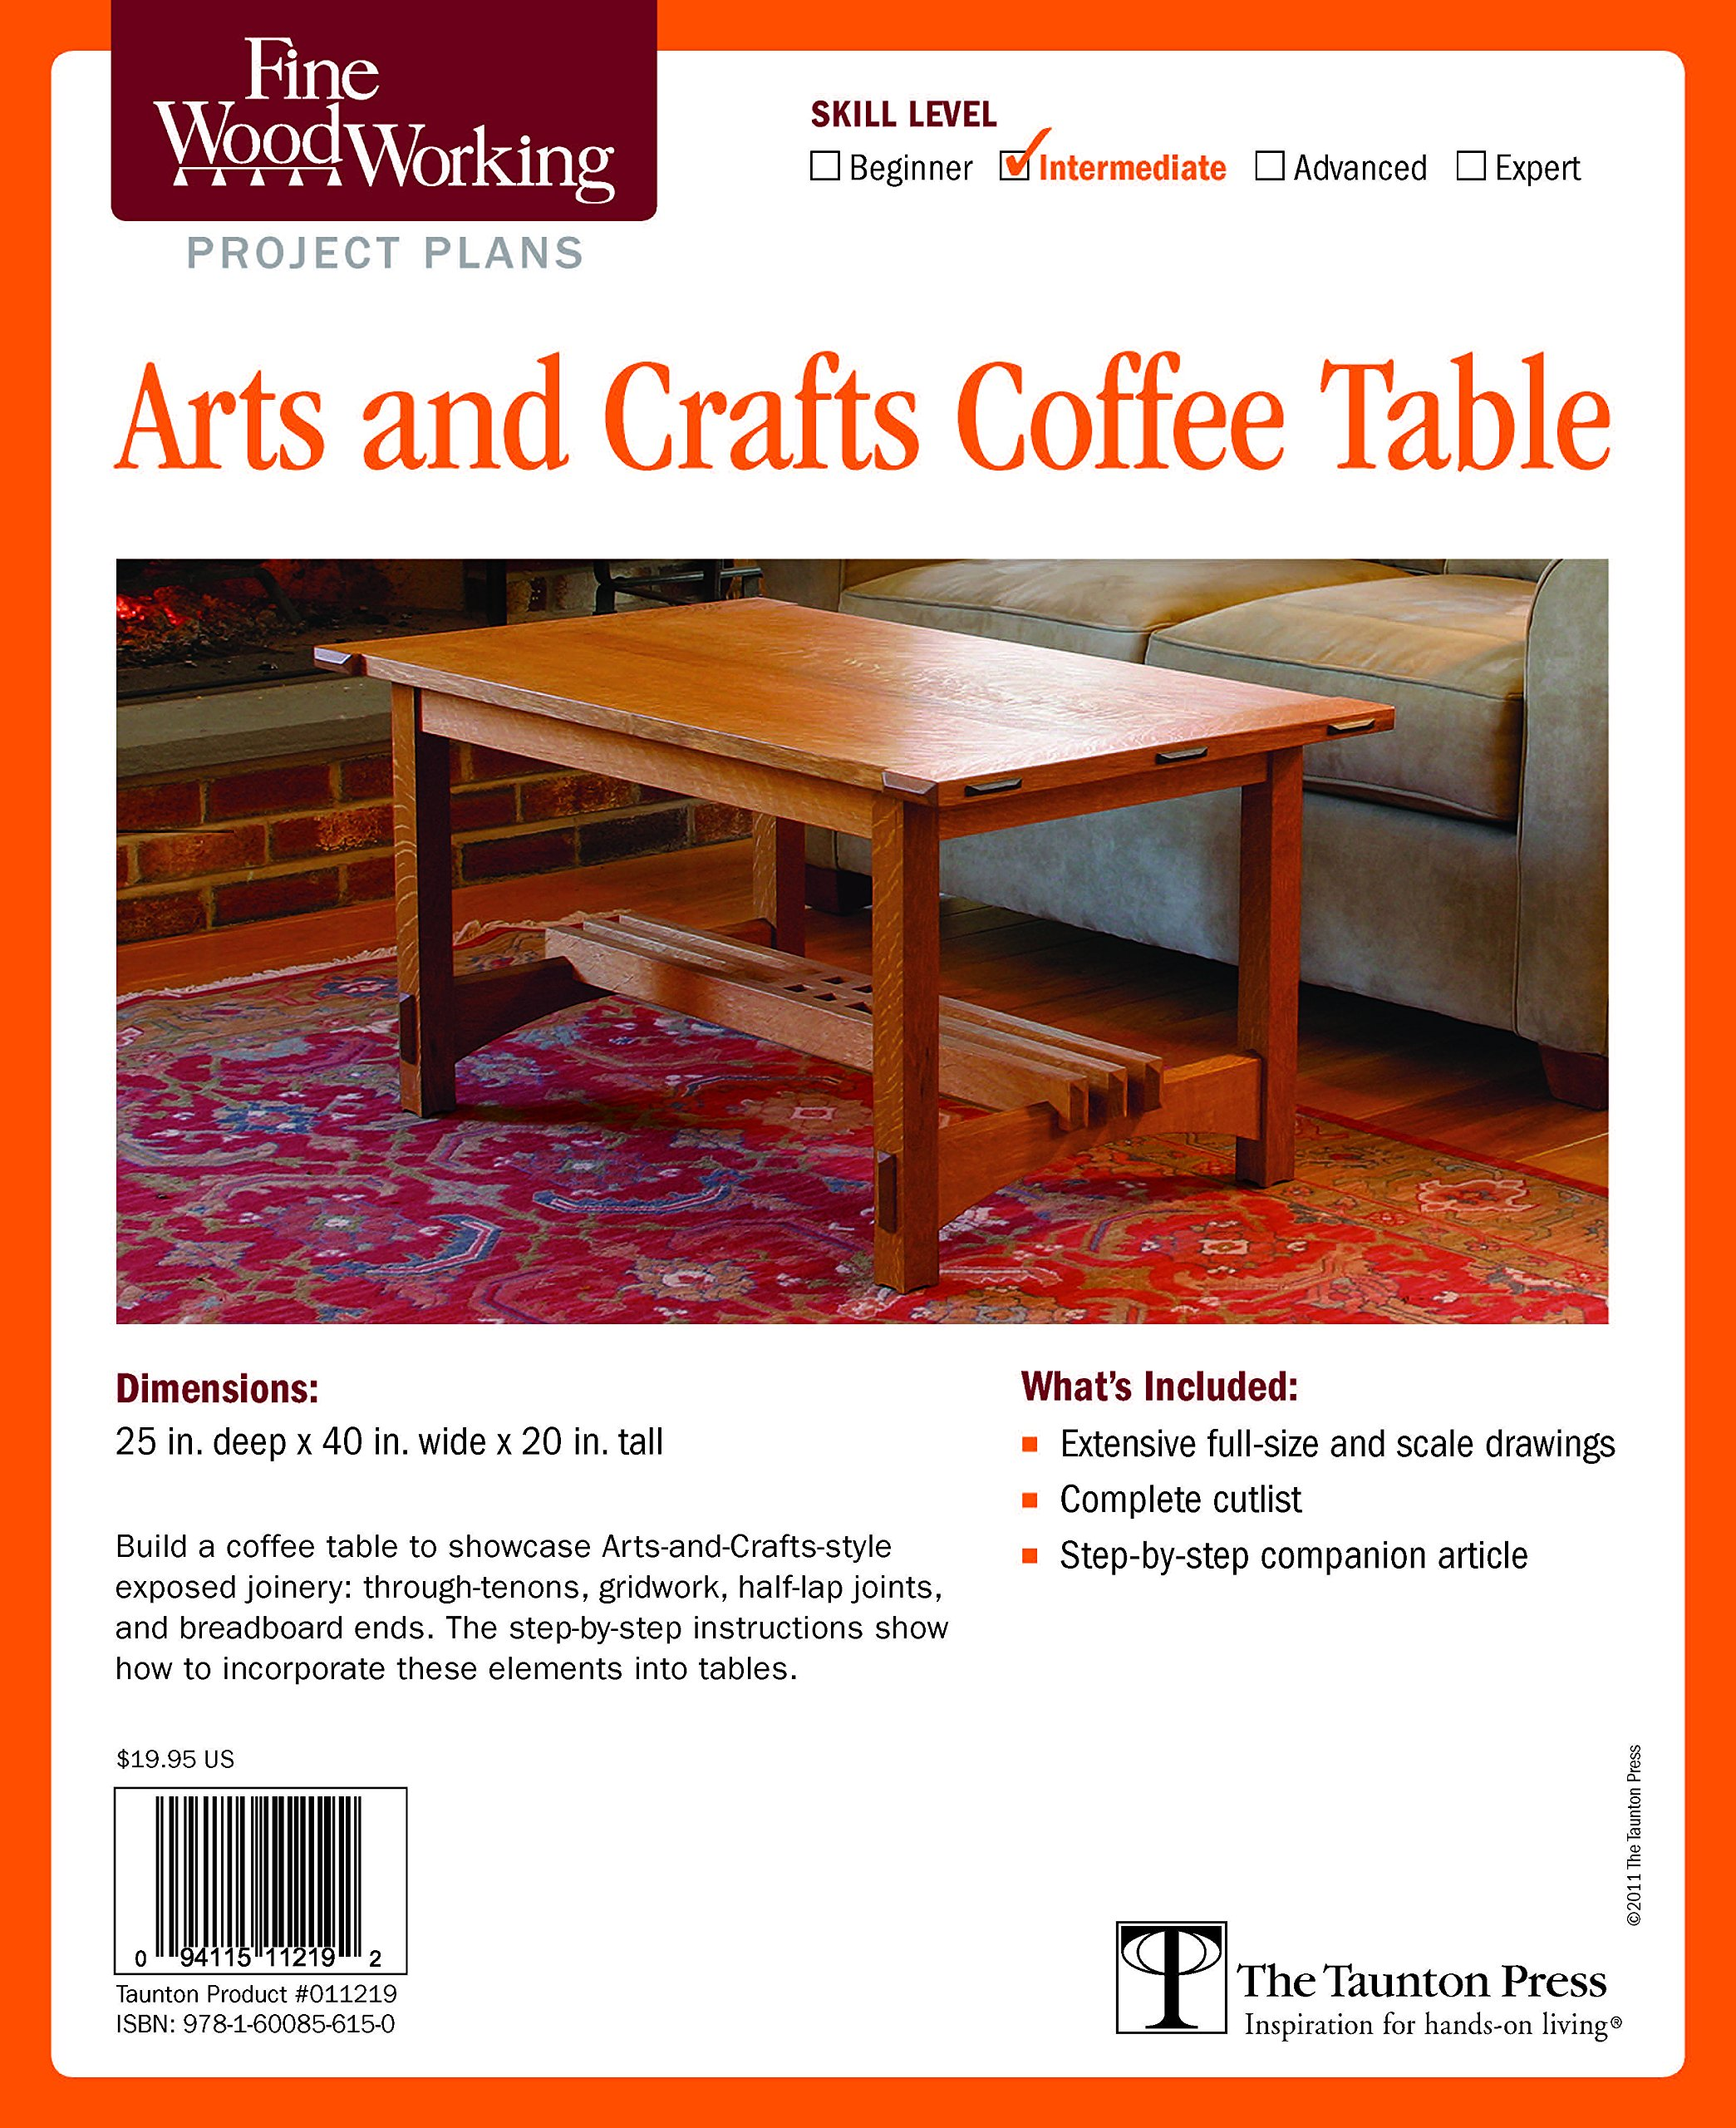 Fine Woodworkings Arts and Crafts Coffee Table Plan Editors of